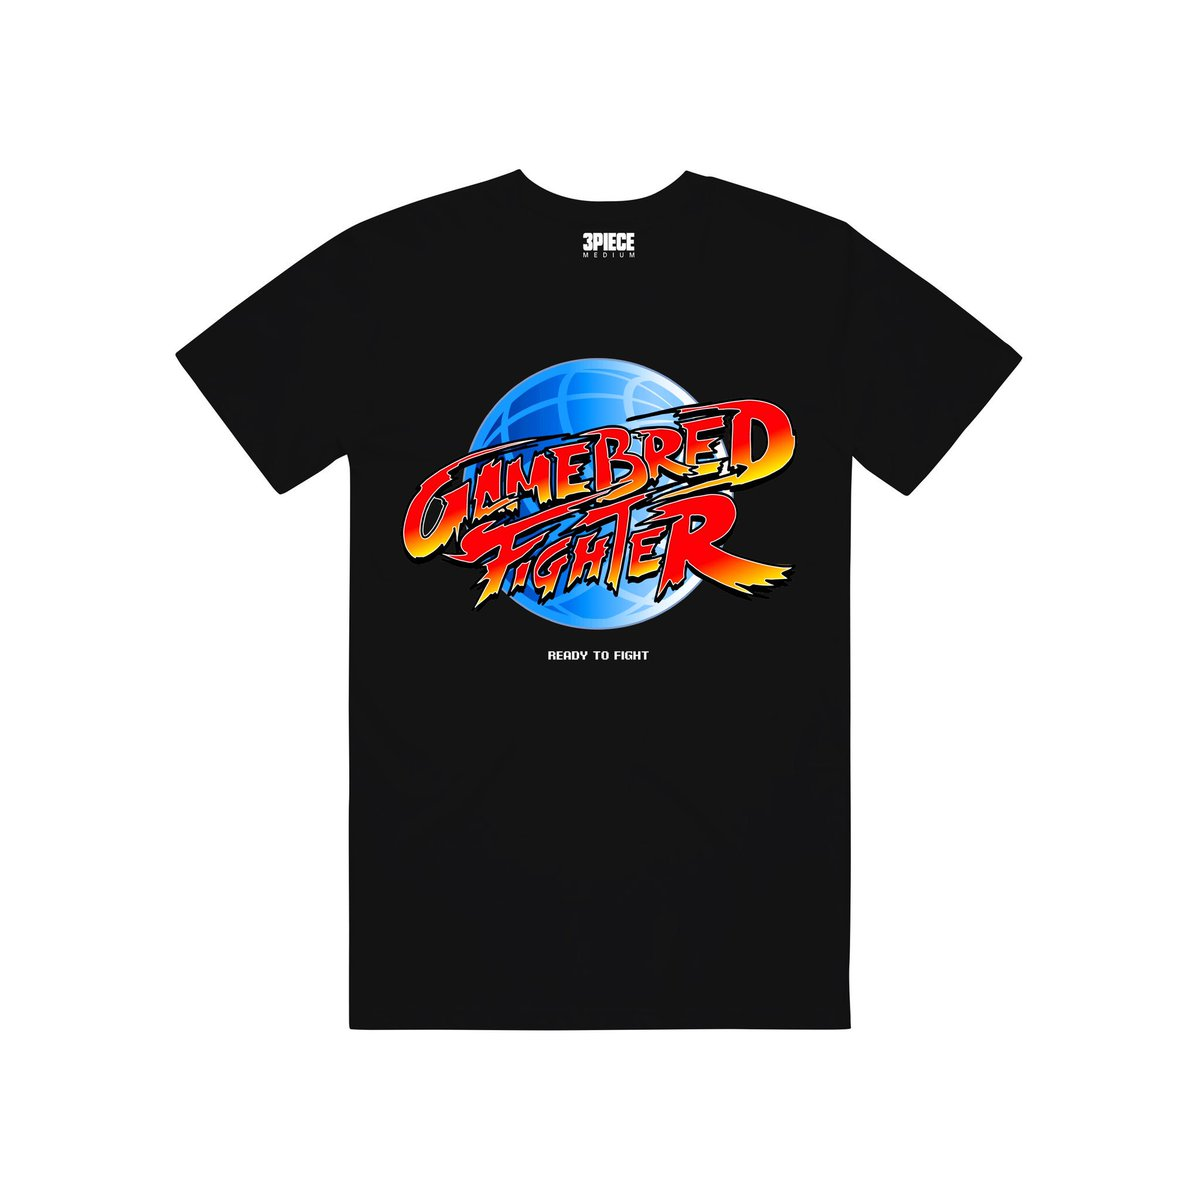 Just dropped a new design #theresurrection http://www.gamebredofficial.com